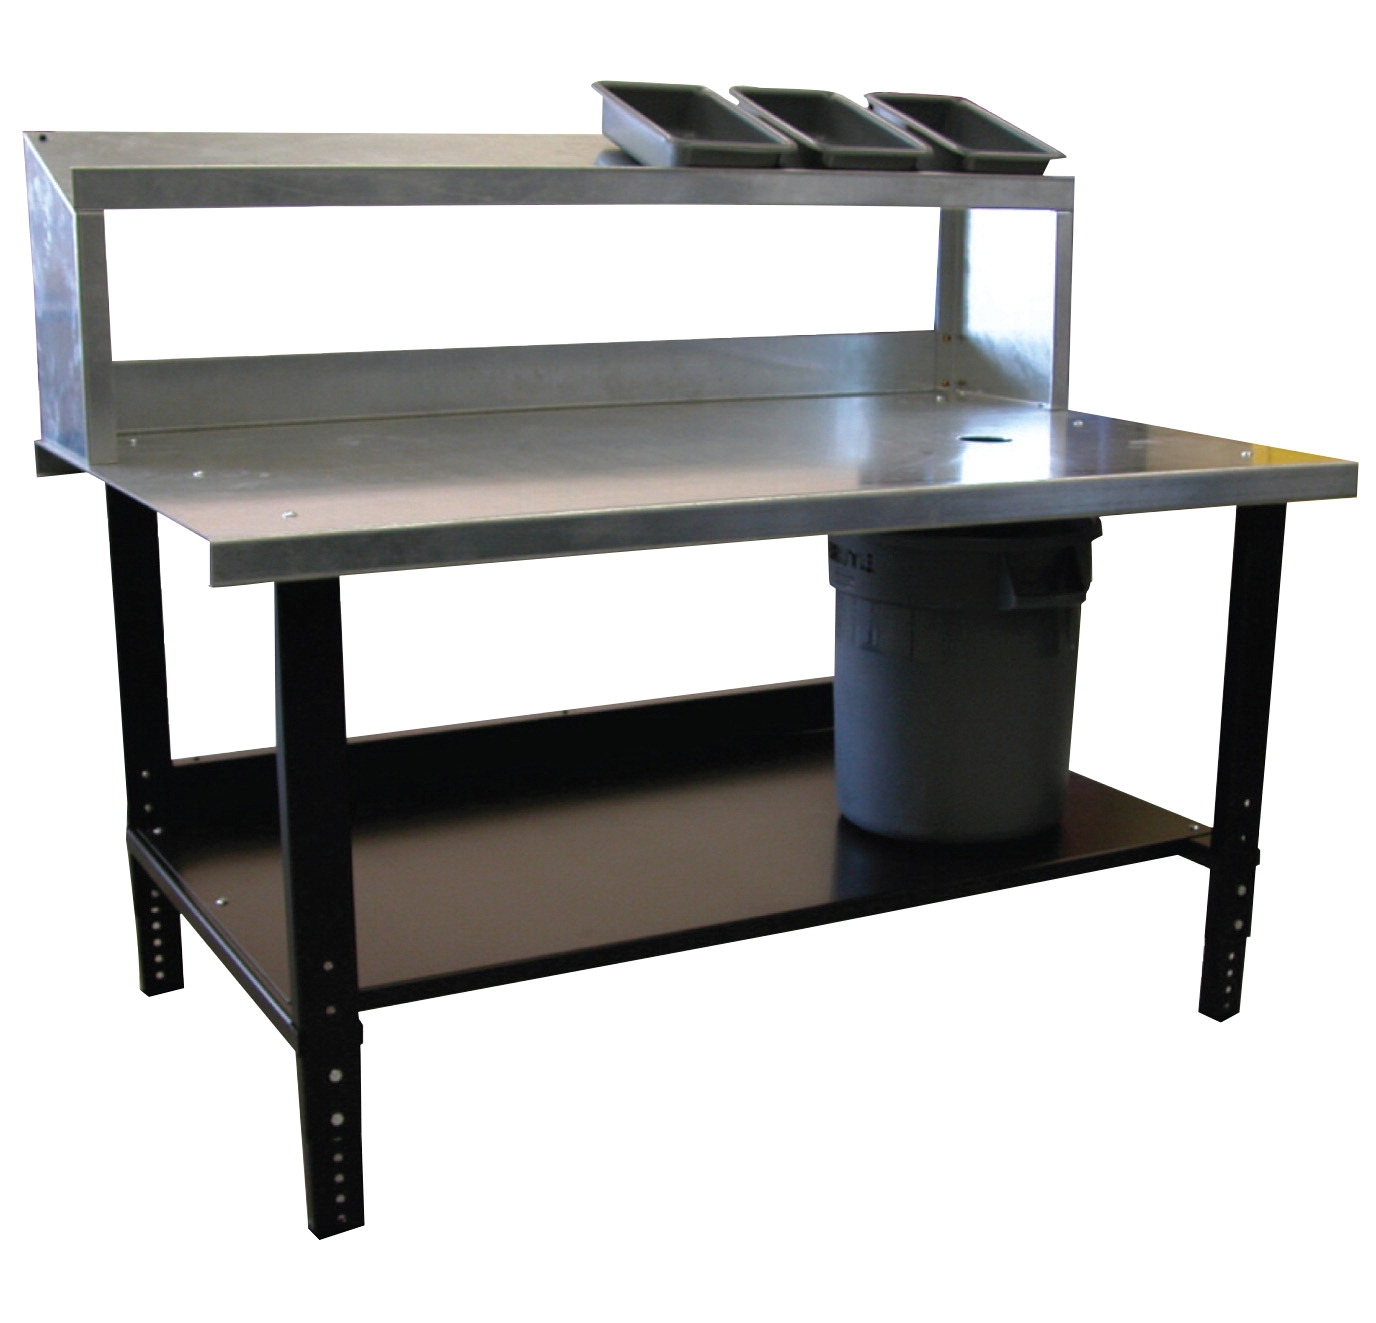 Fantastic Greene Potting Work Bench 60 X 30 X 27 To 38 Inches Various Options Pabps2019 Chair Design Images Pabps2019Com